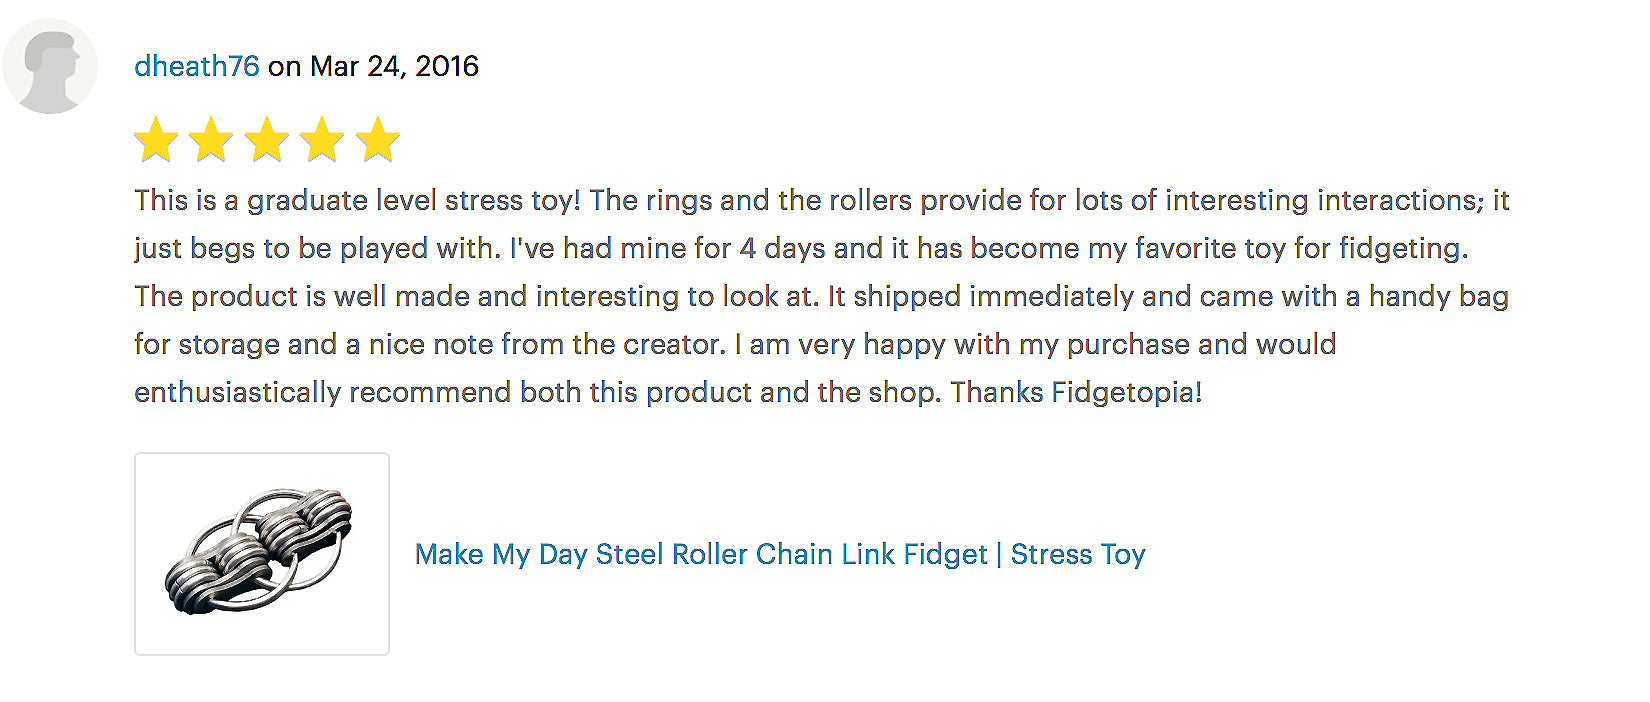 MAKE MY DAY STEEL ROLLER CHAIN LINK FIDGET | STRESS TOY